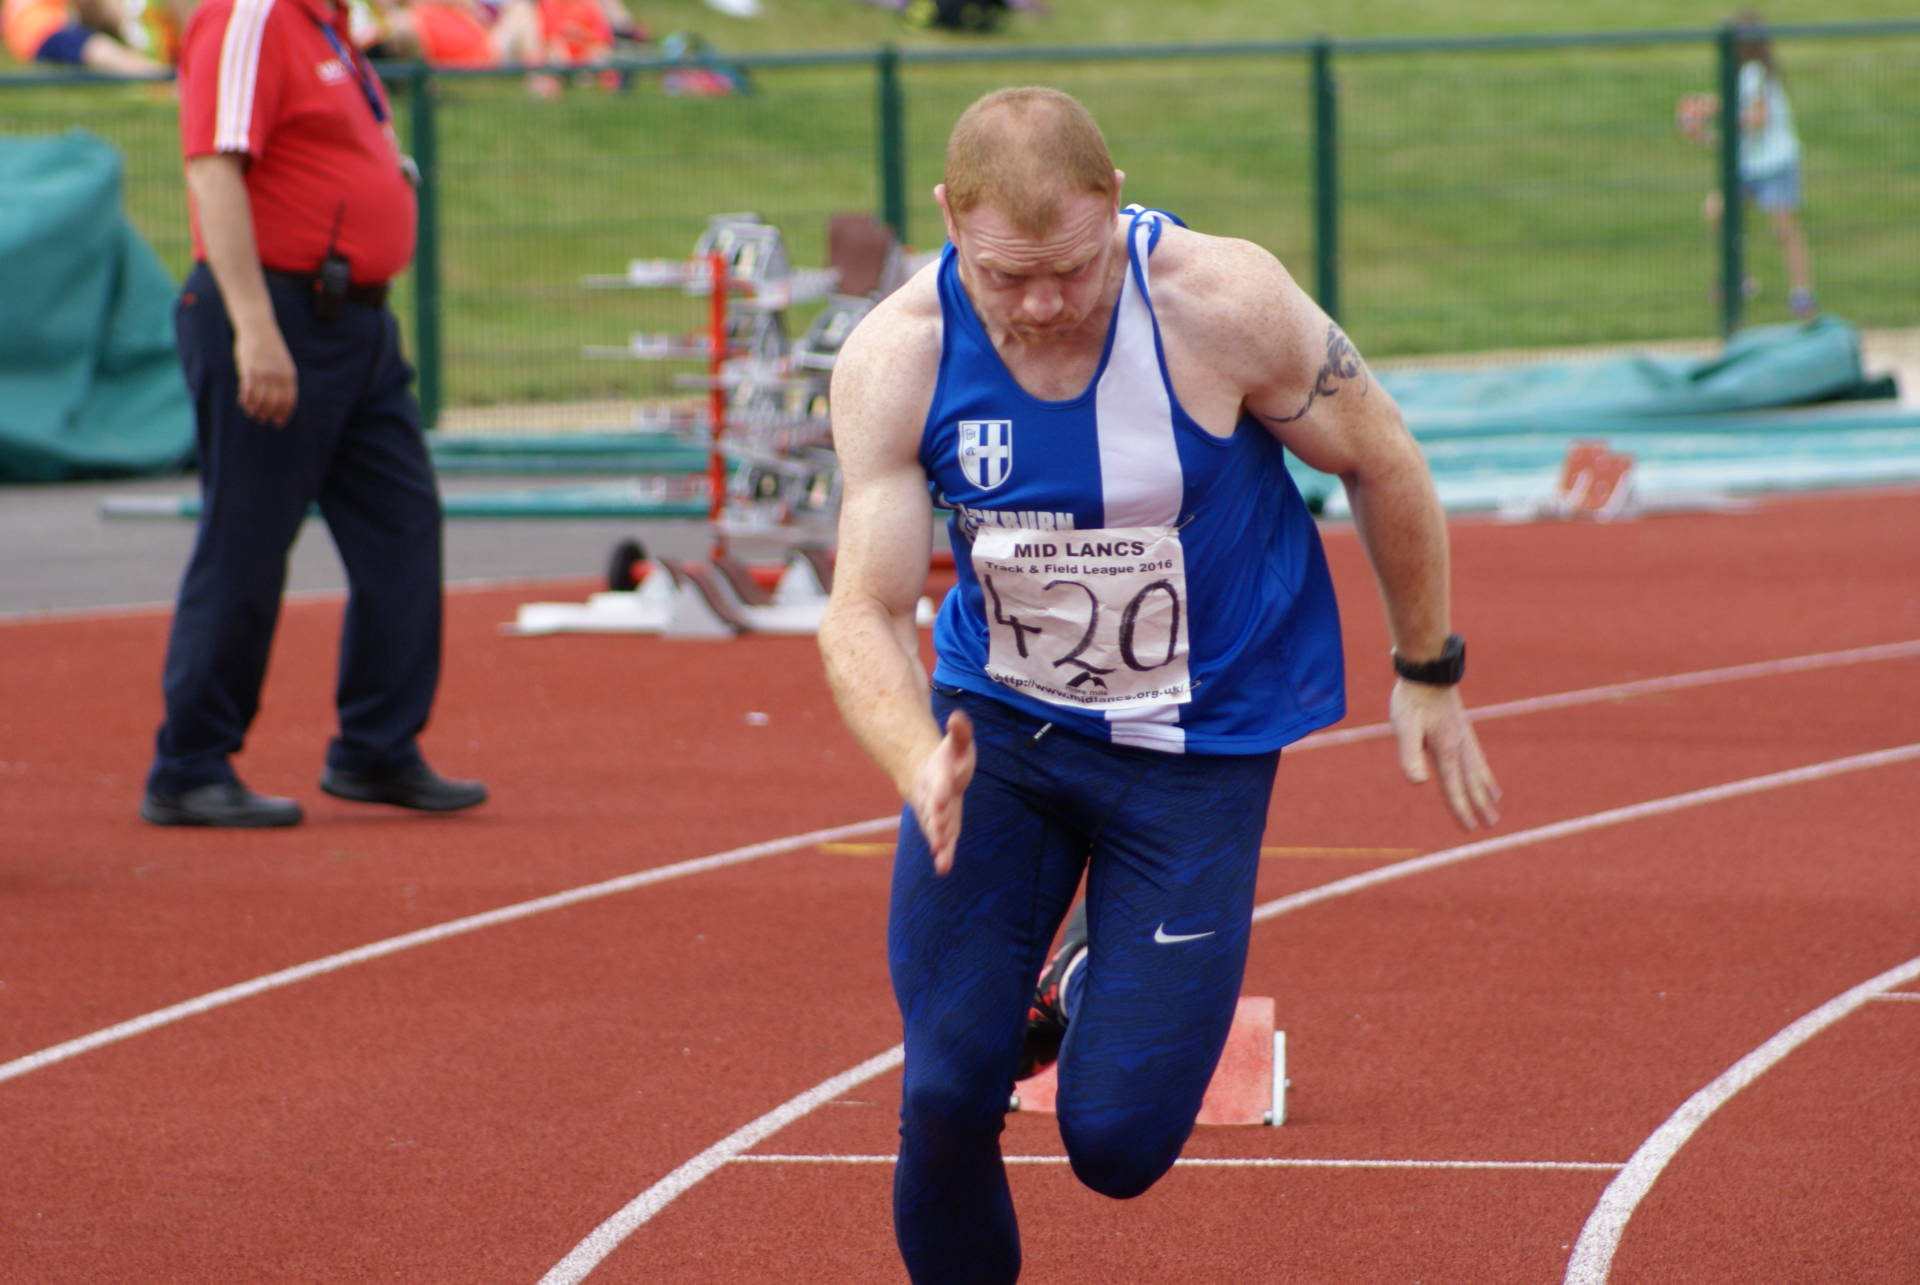 PB's for Harriers athletes at Mid Lancs League